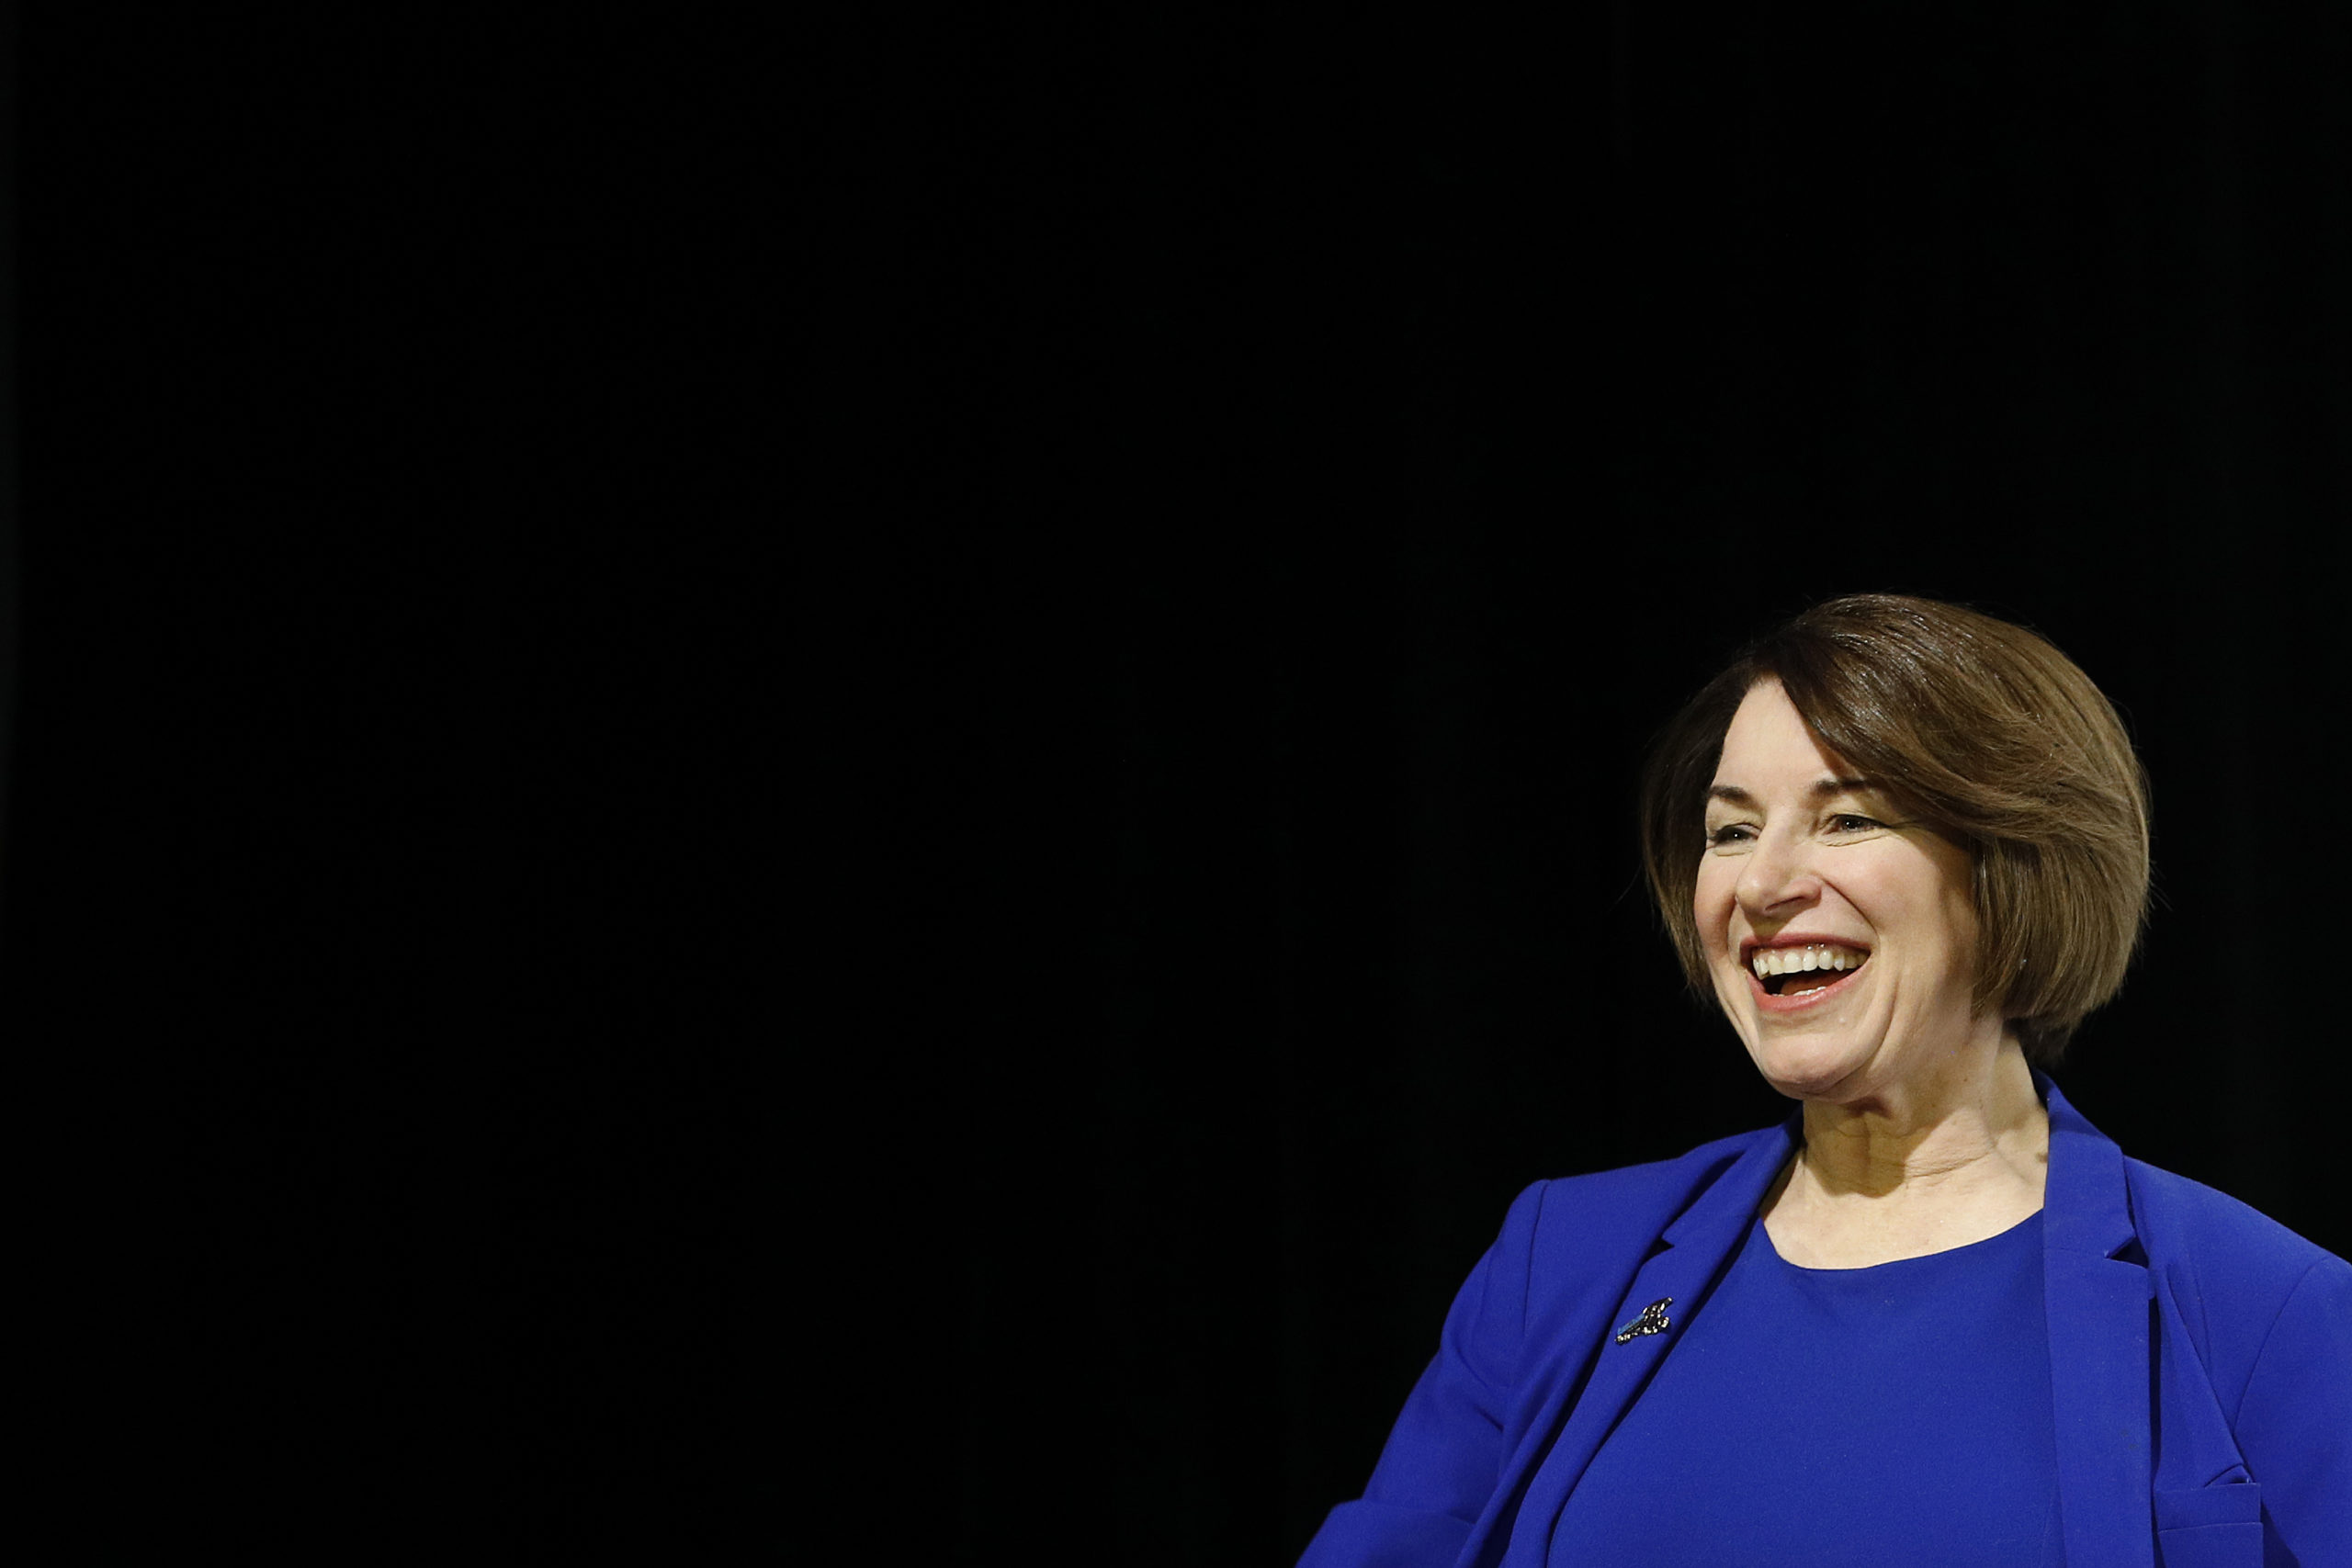 Klobuchar to hold campaign event in Fargo